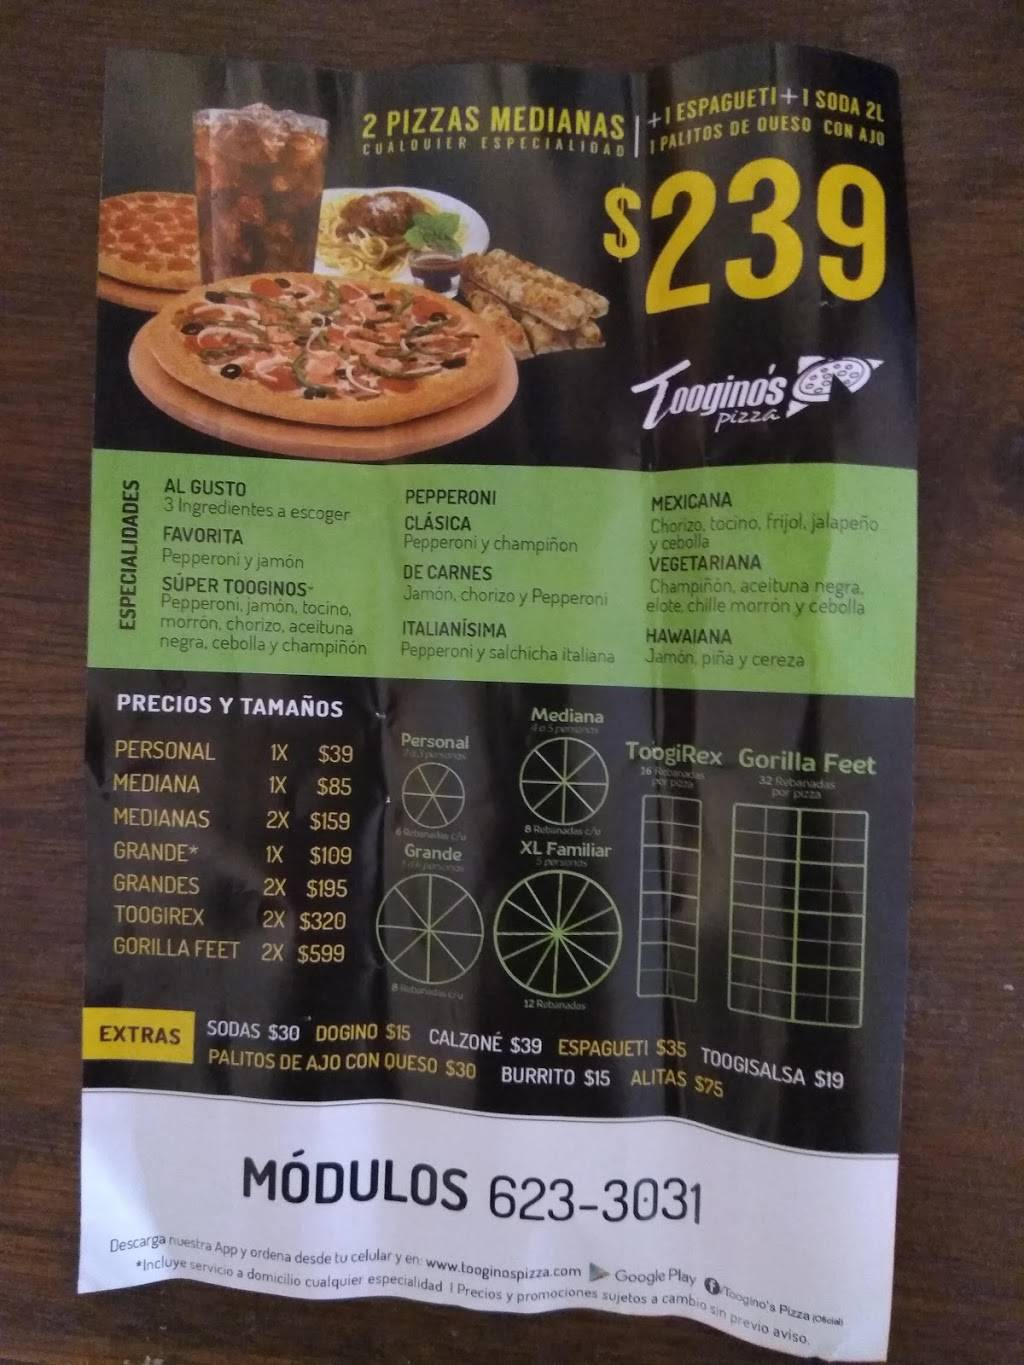 Tooginos Pizza Otay | meal delivery | 1, Blvd. Industrial 17, Nueva Tijuana, 22660 Tijuana, B.C., Mexico | 016646233031 OR +52 664 623 3031